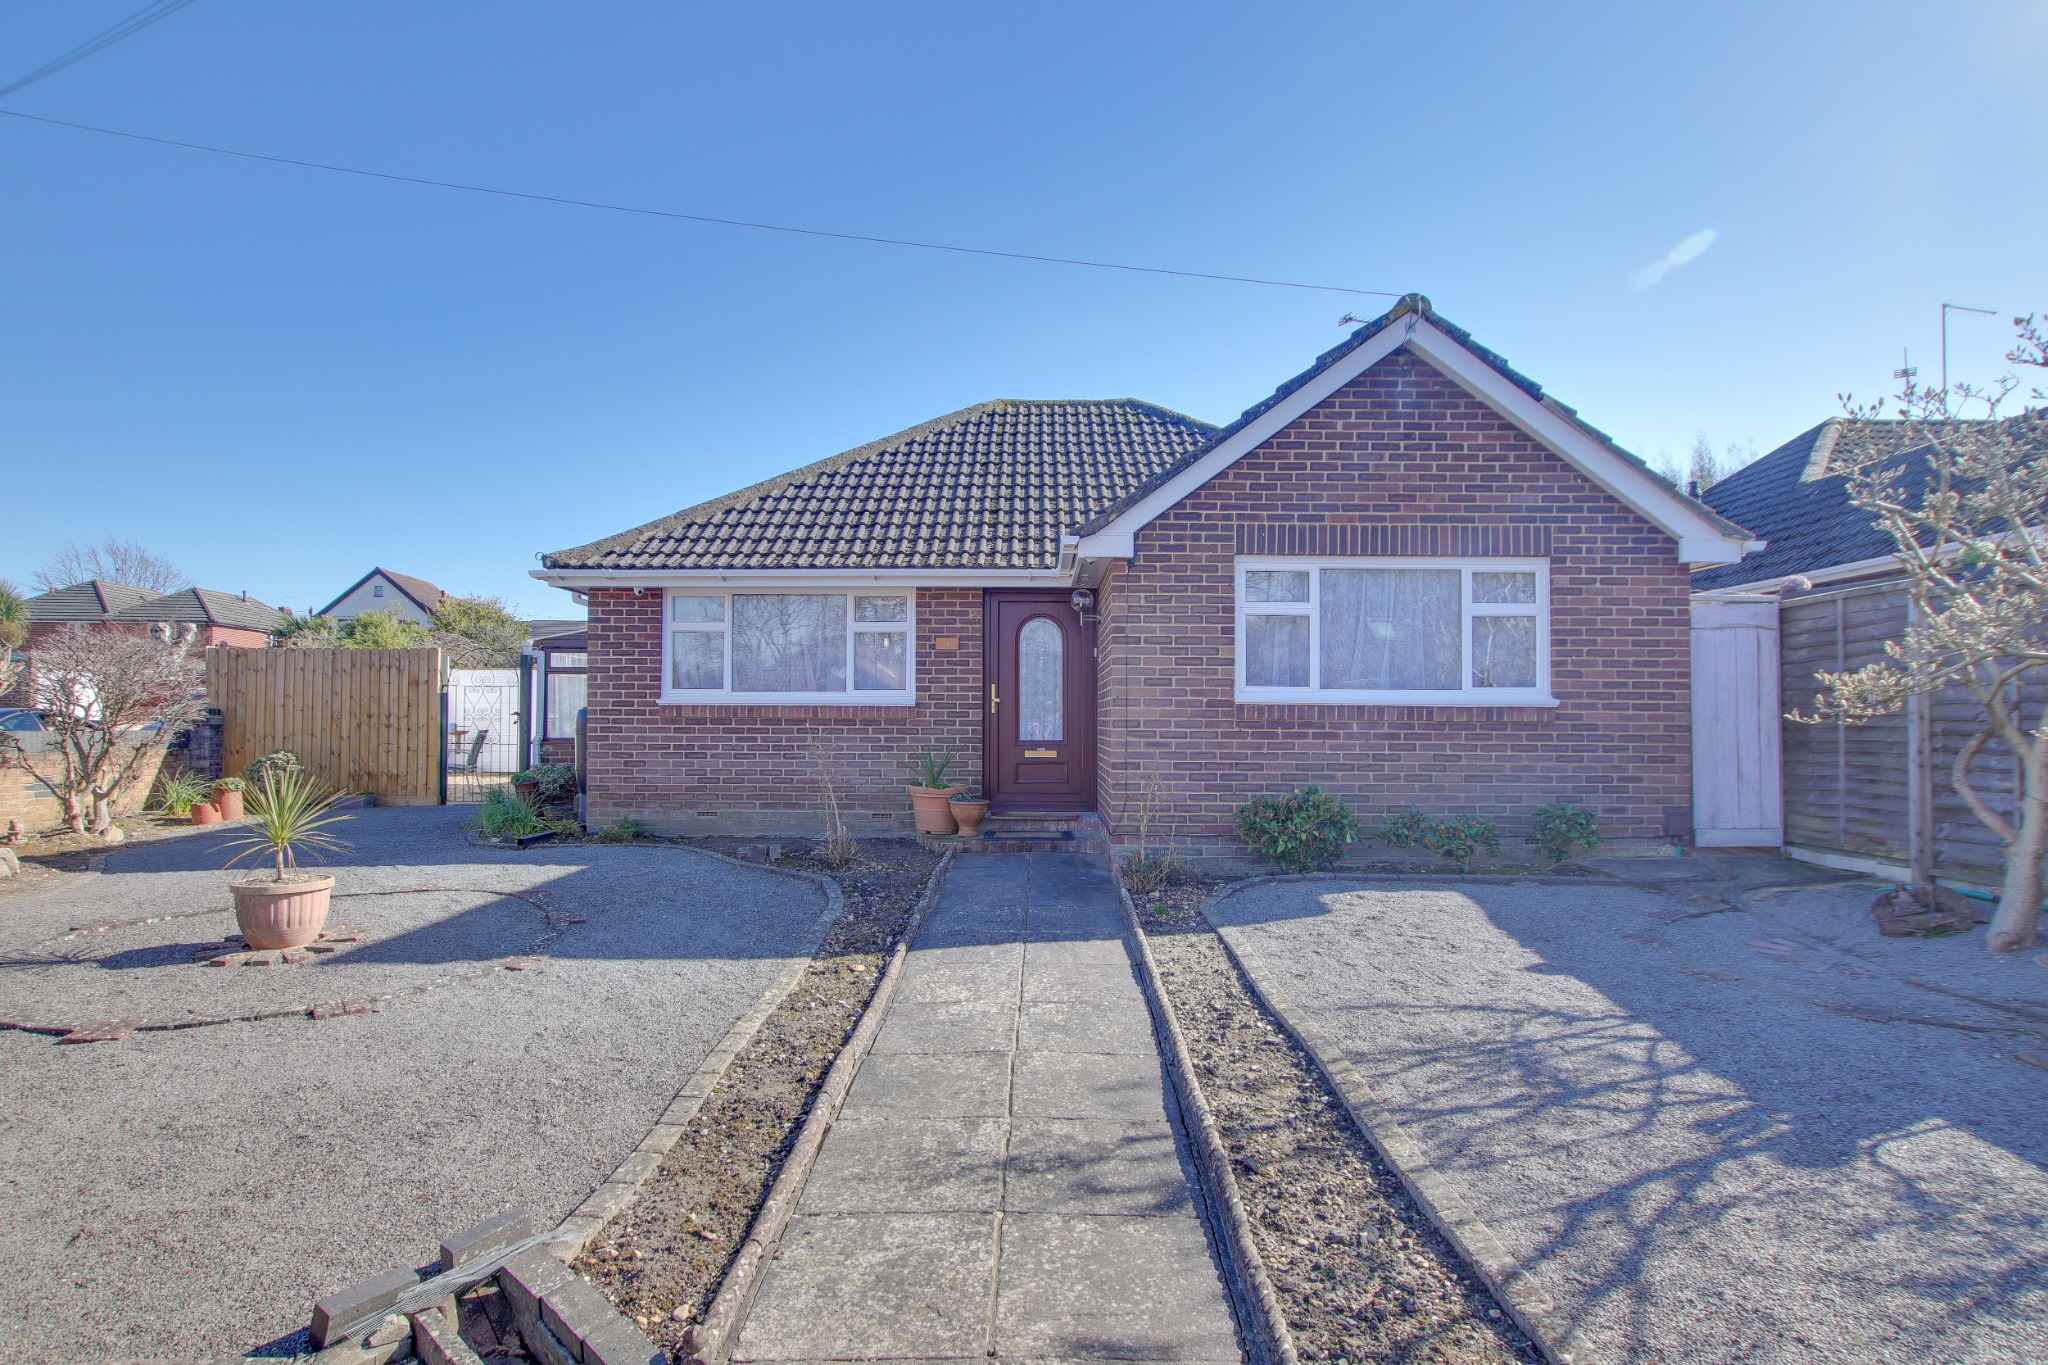 HEDGE END! DETACHED BUNGALOW! WRAP AROUND GARDEN!